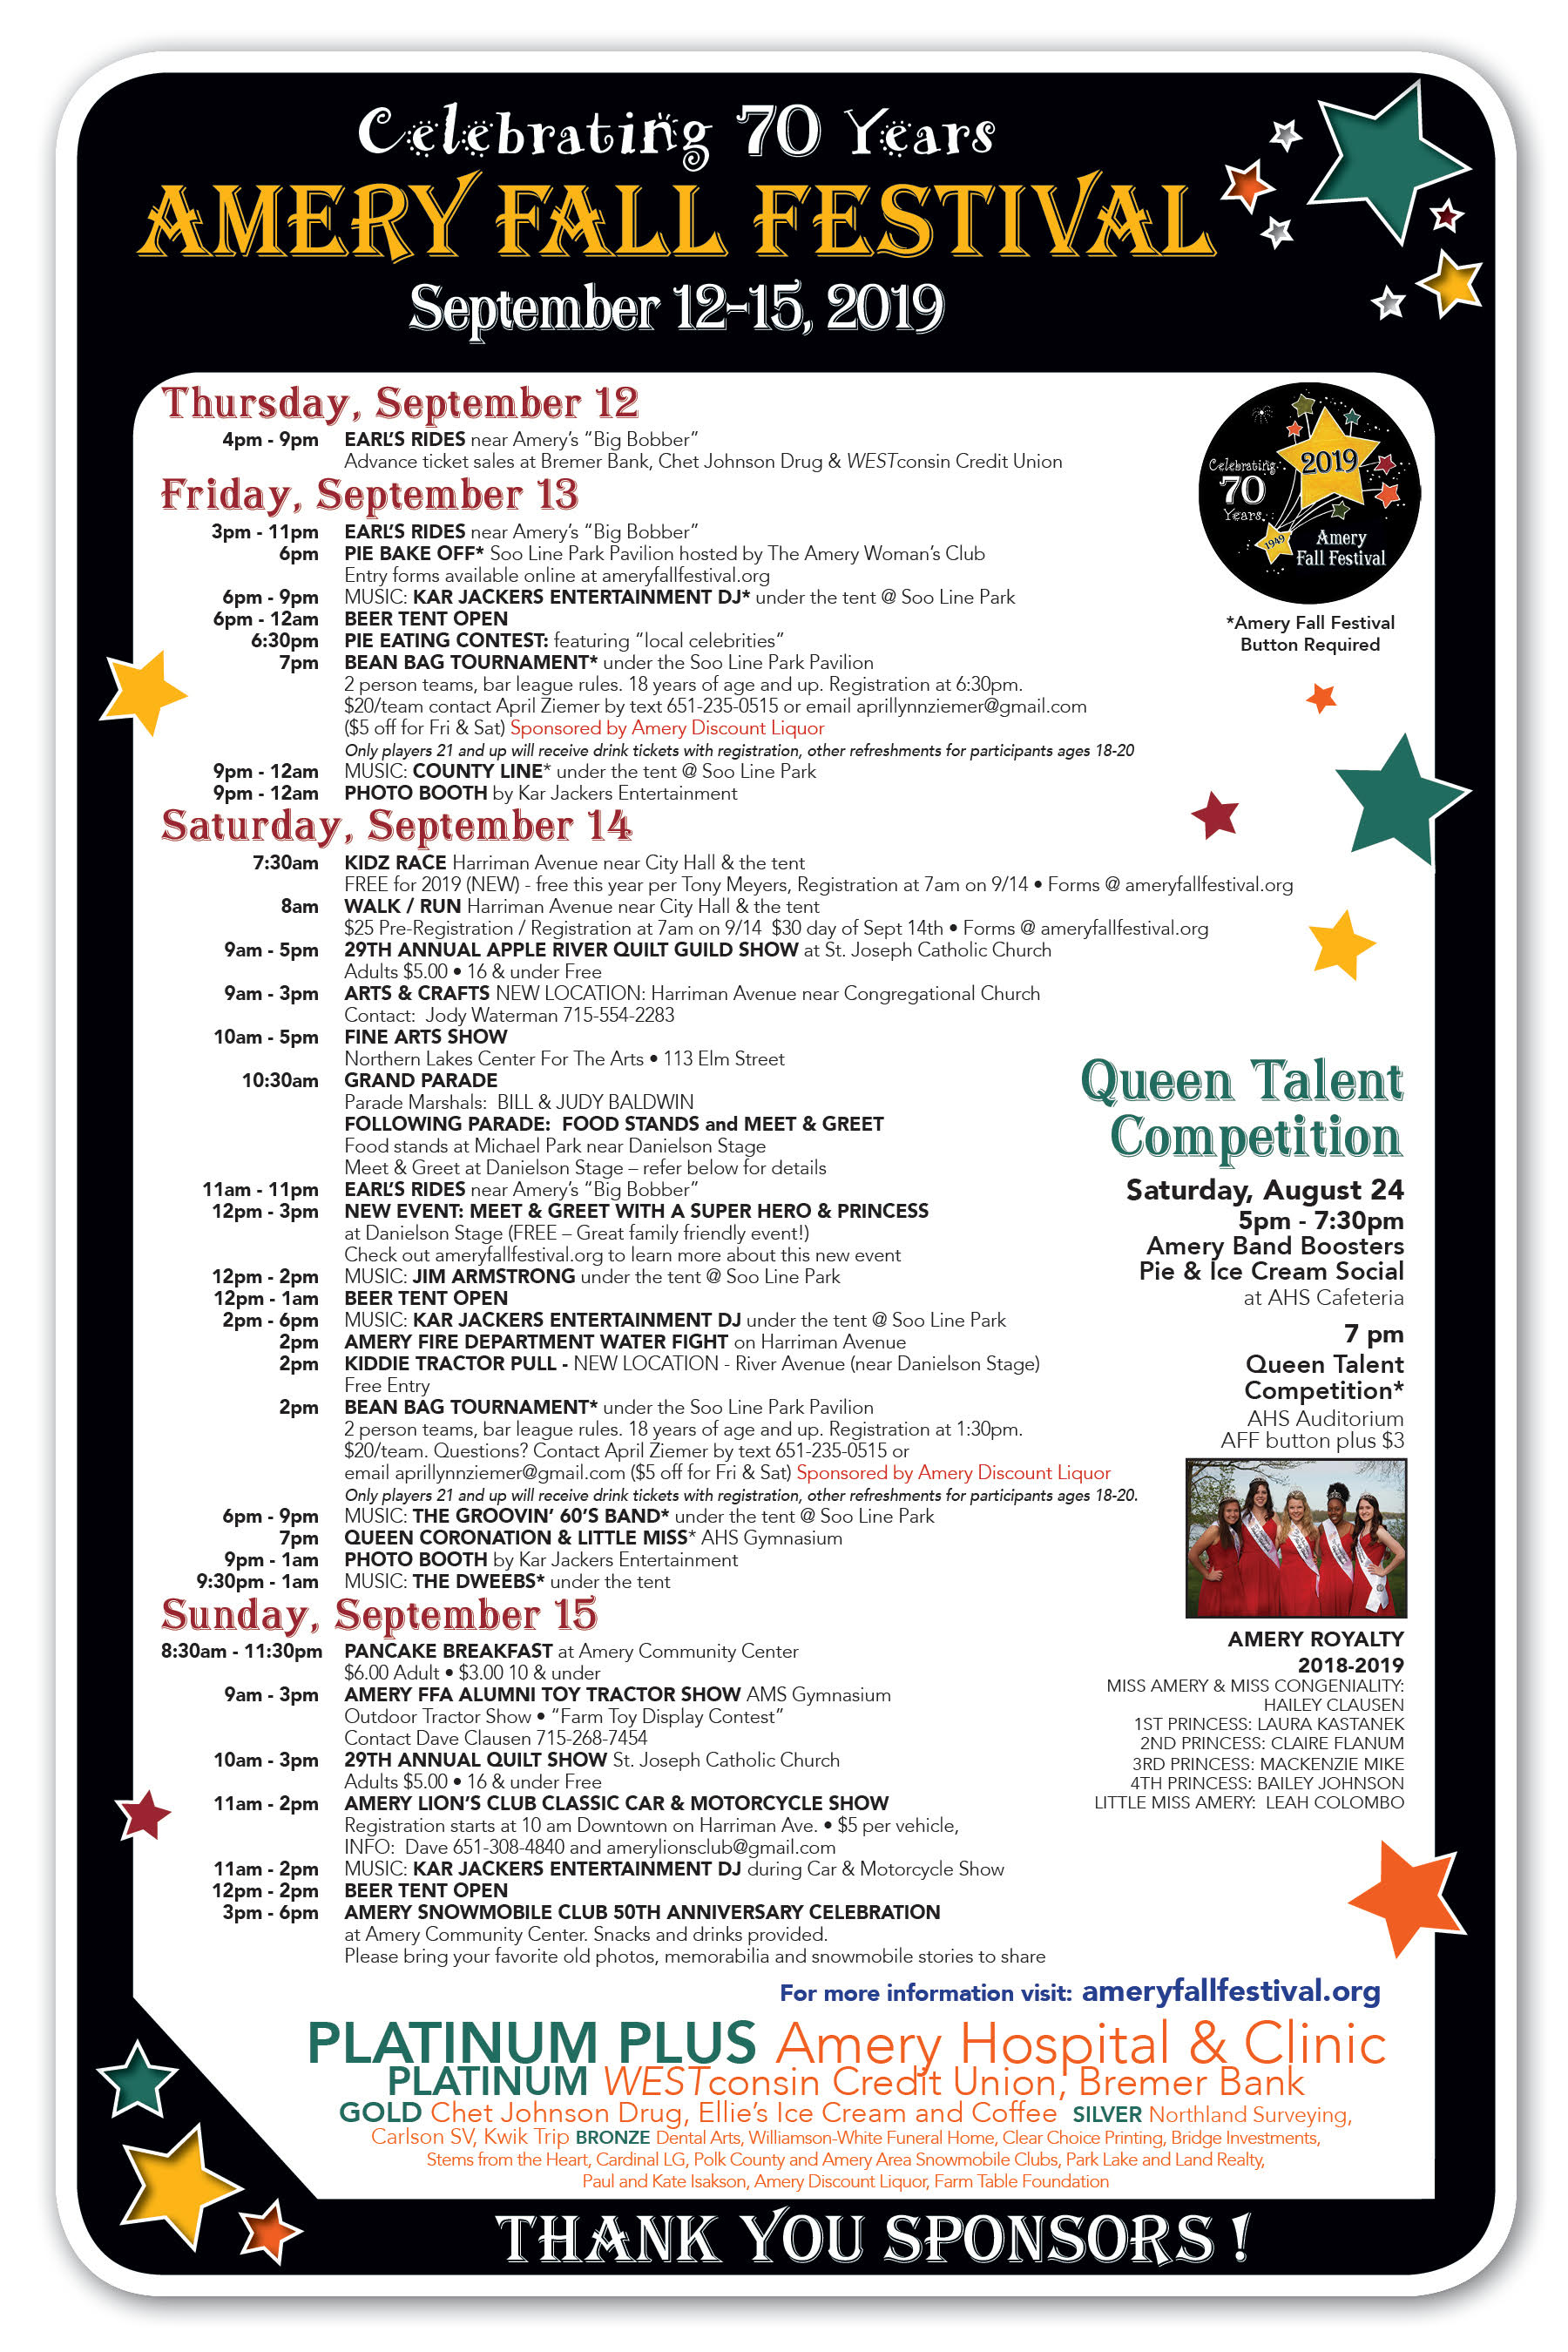 2019 Event Poster - Amery Fall Festival